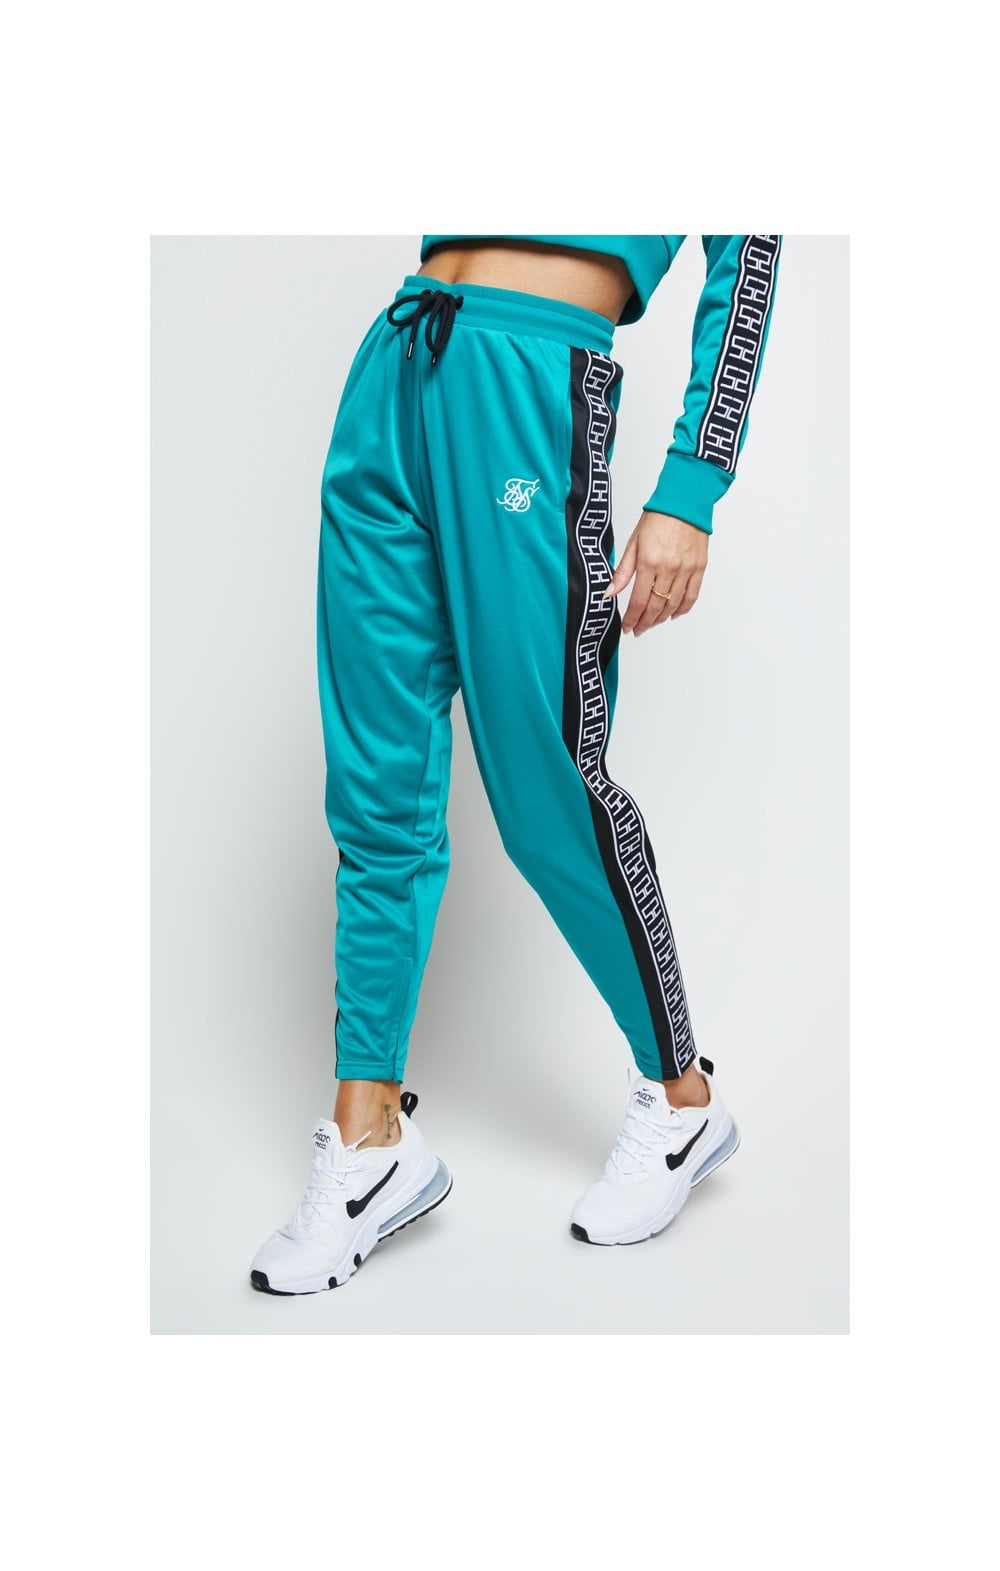 Load image into Gallery viewer, SikSilk Azure Track Pants - Teal (2)